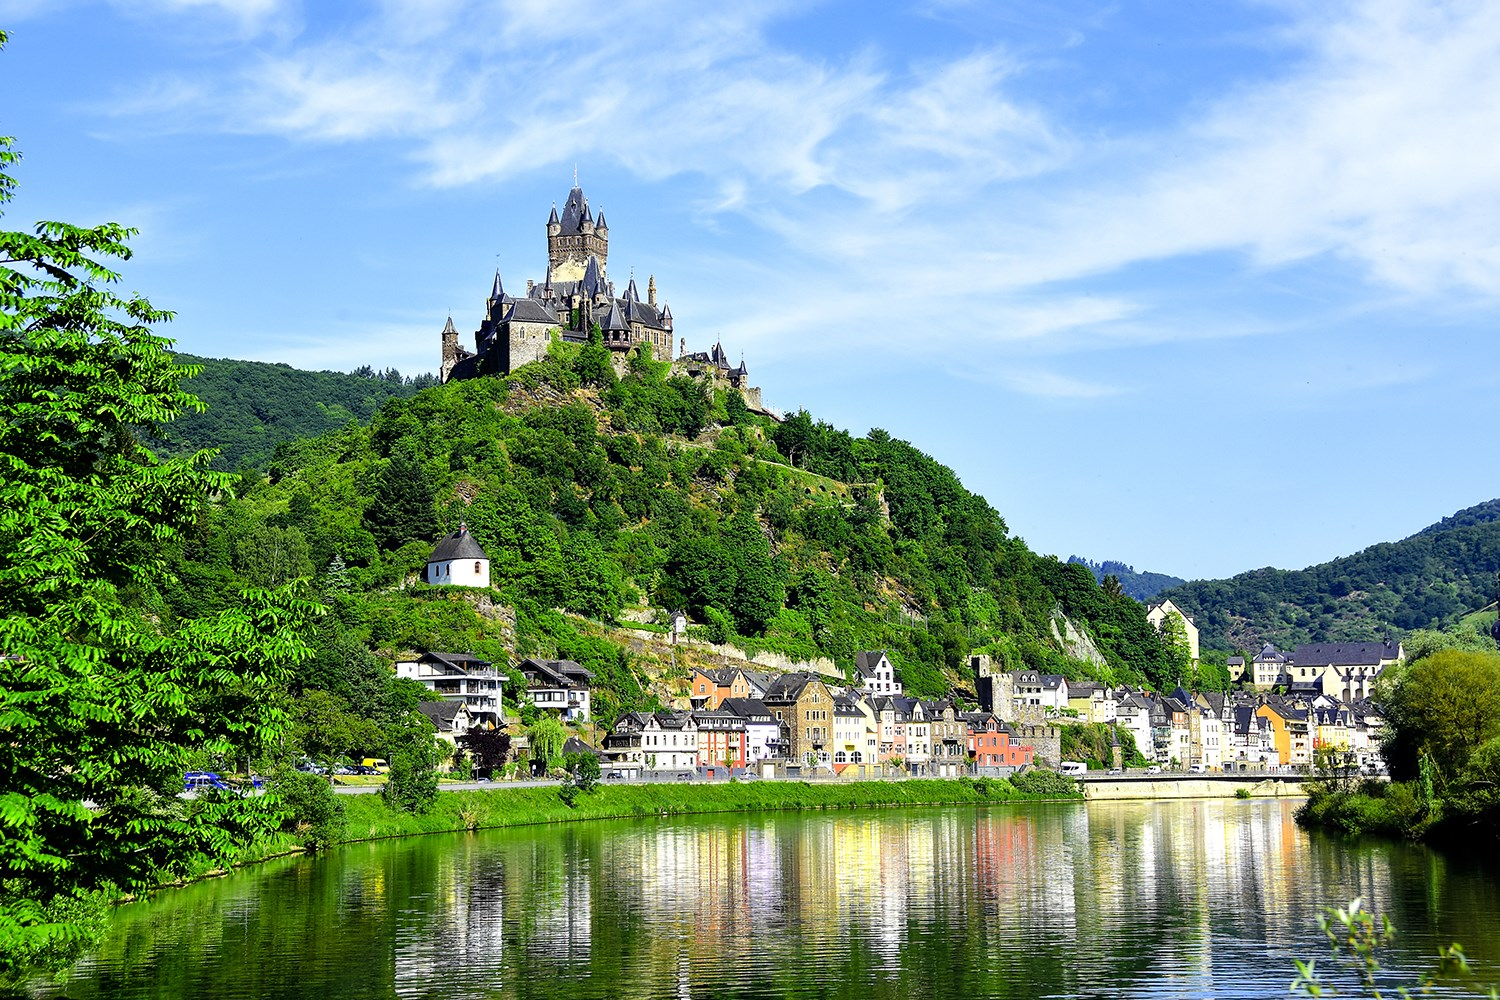 Europe 39 s rivers castles river cruise 2017 amawaterways - Cochem alemania ...